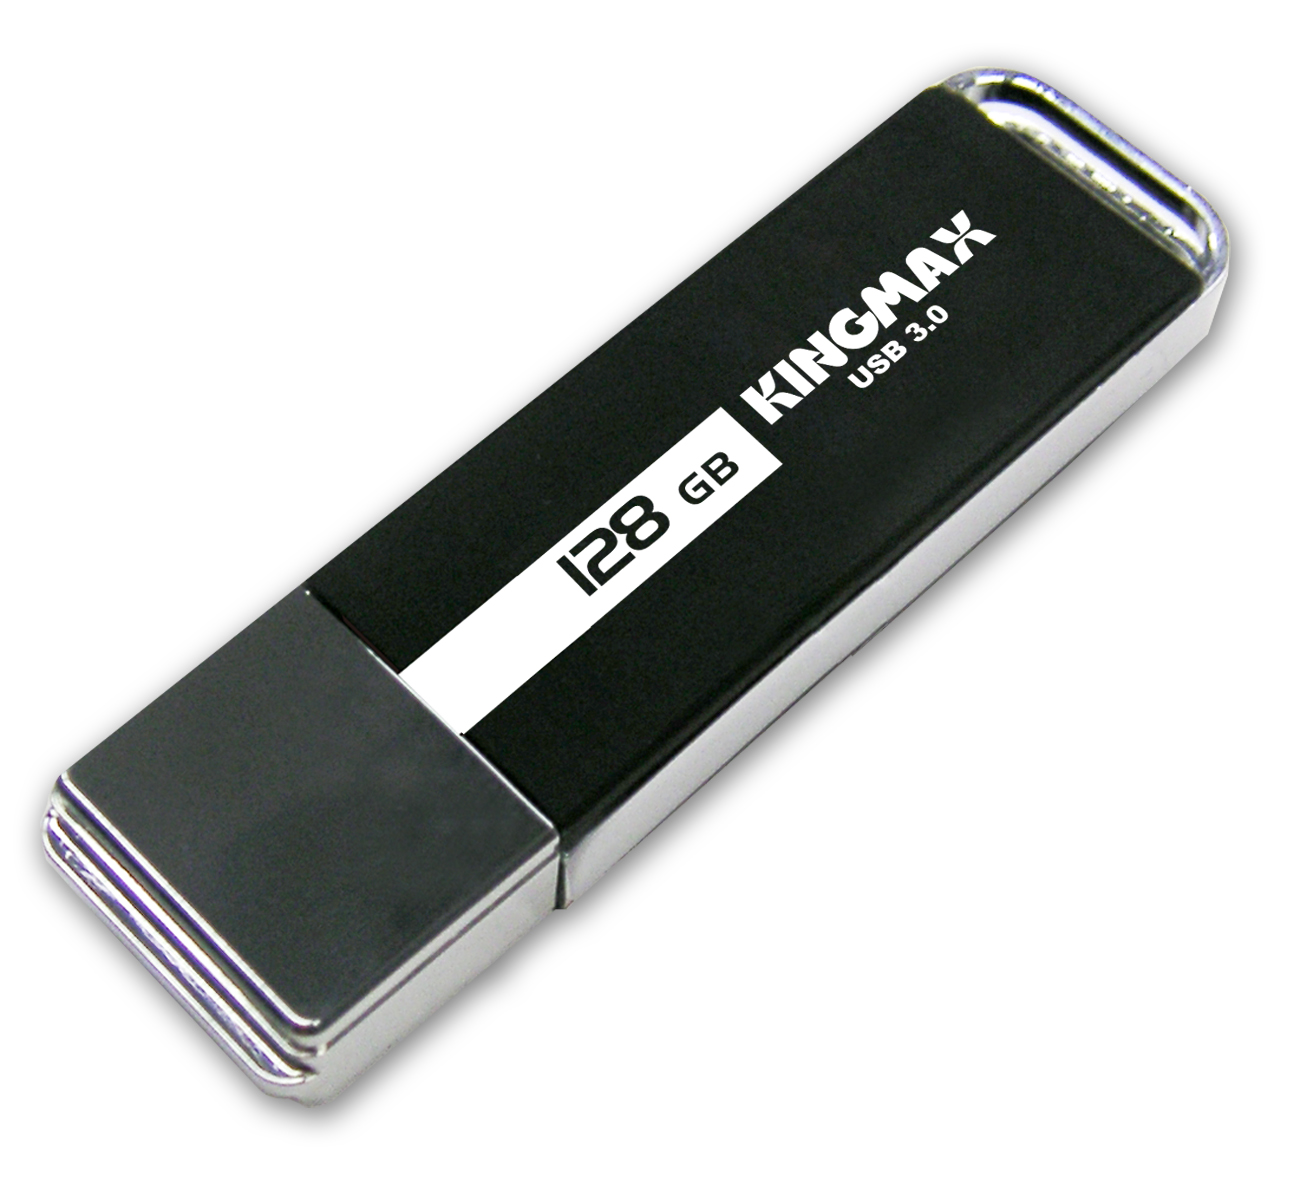 Kingmax ED-01 128GB USB3.0